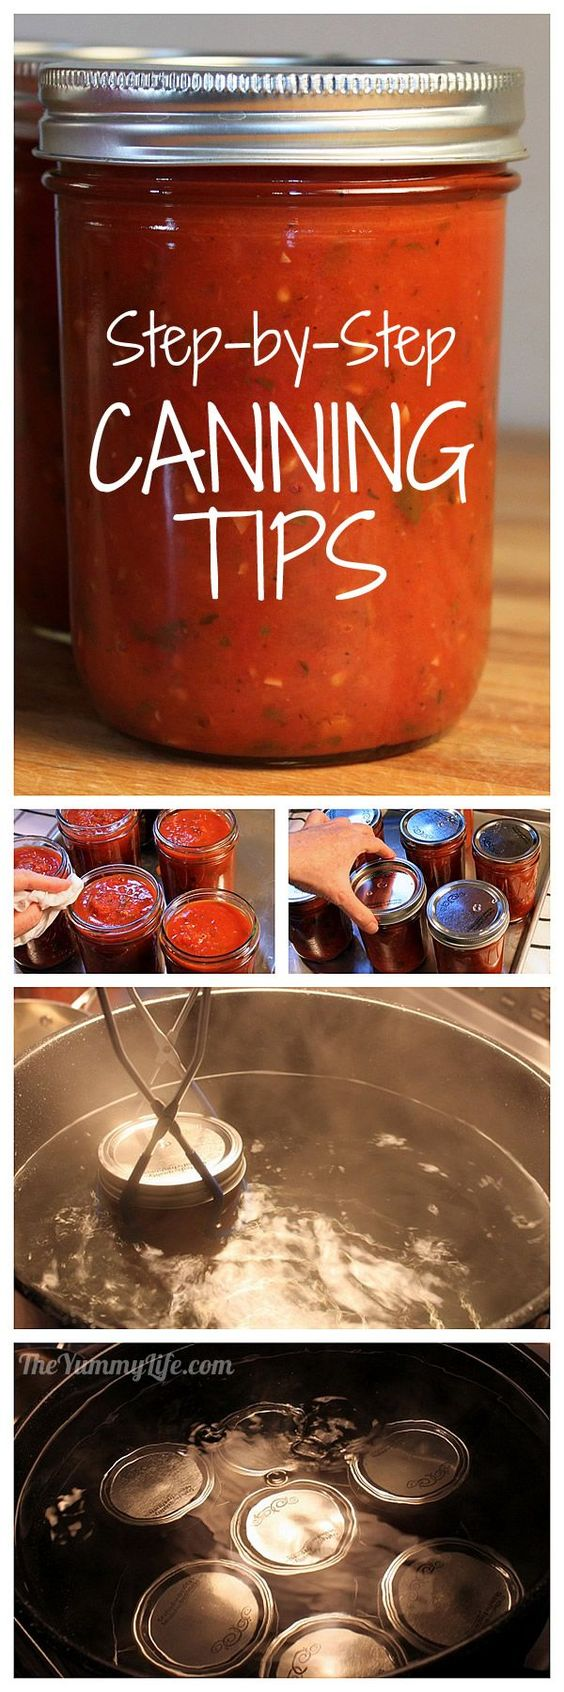 Step-by-step water process canning tips for beginners.: